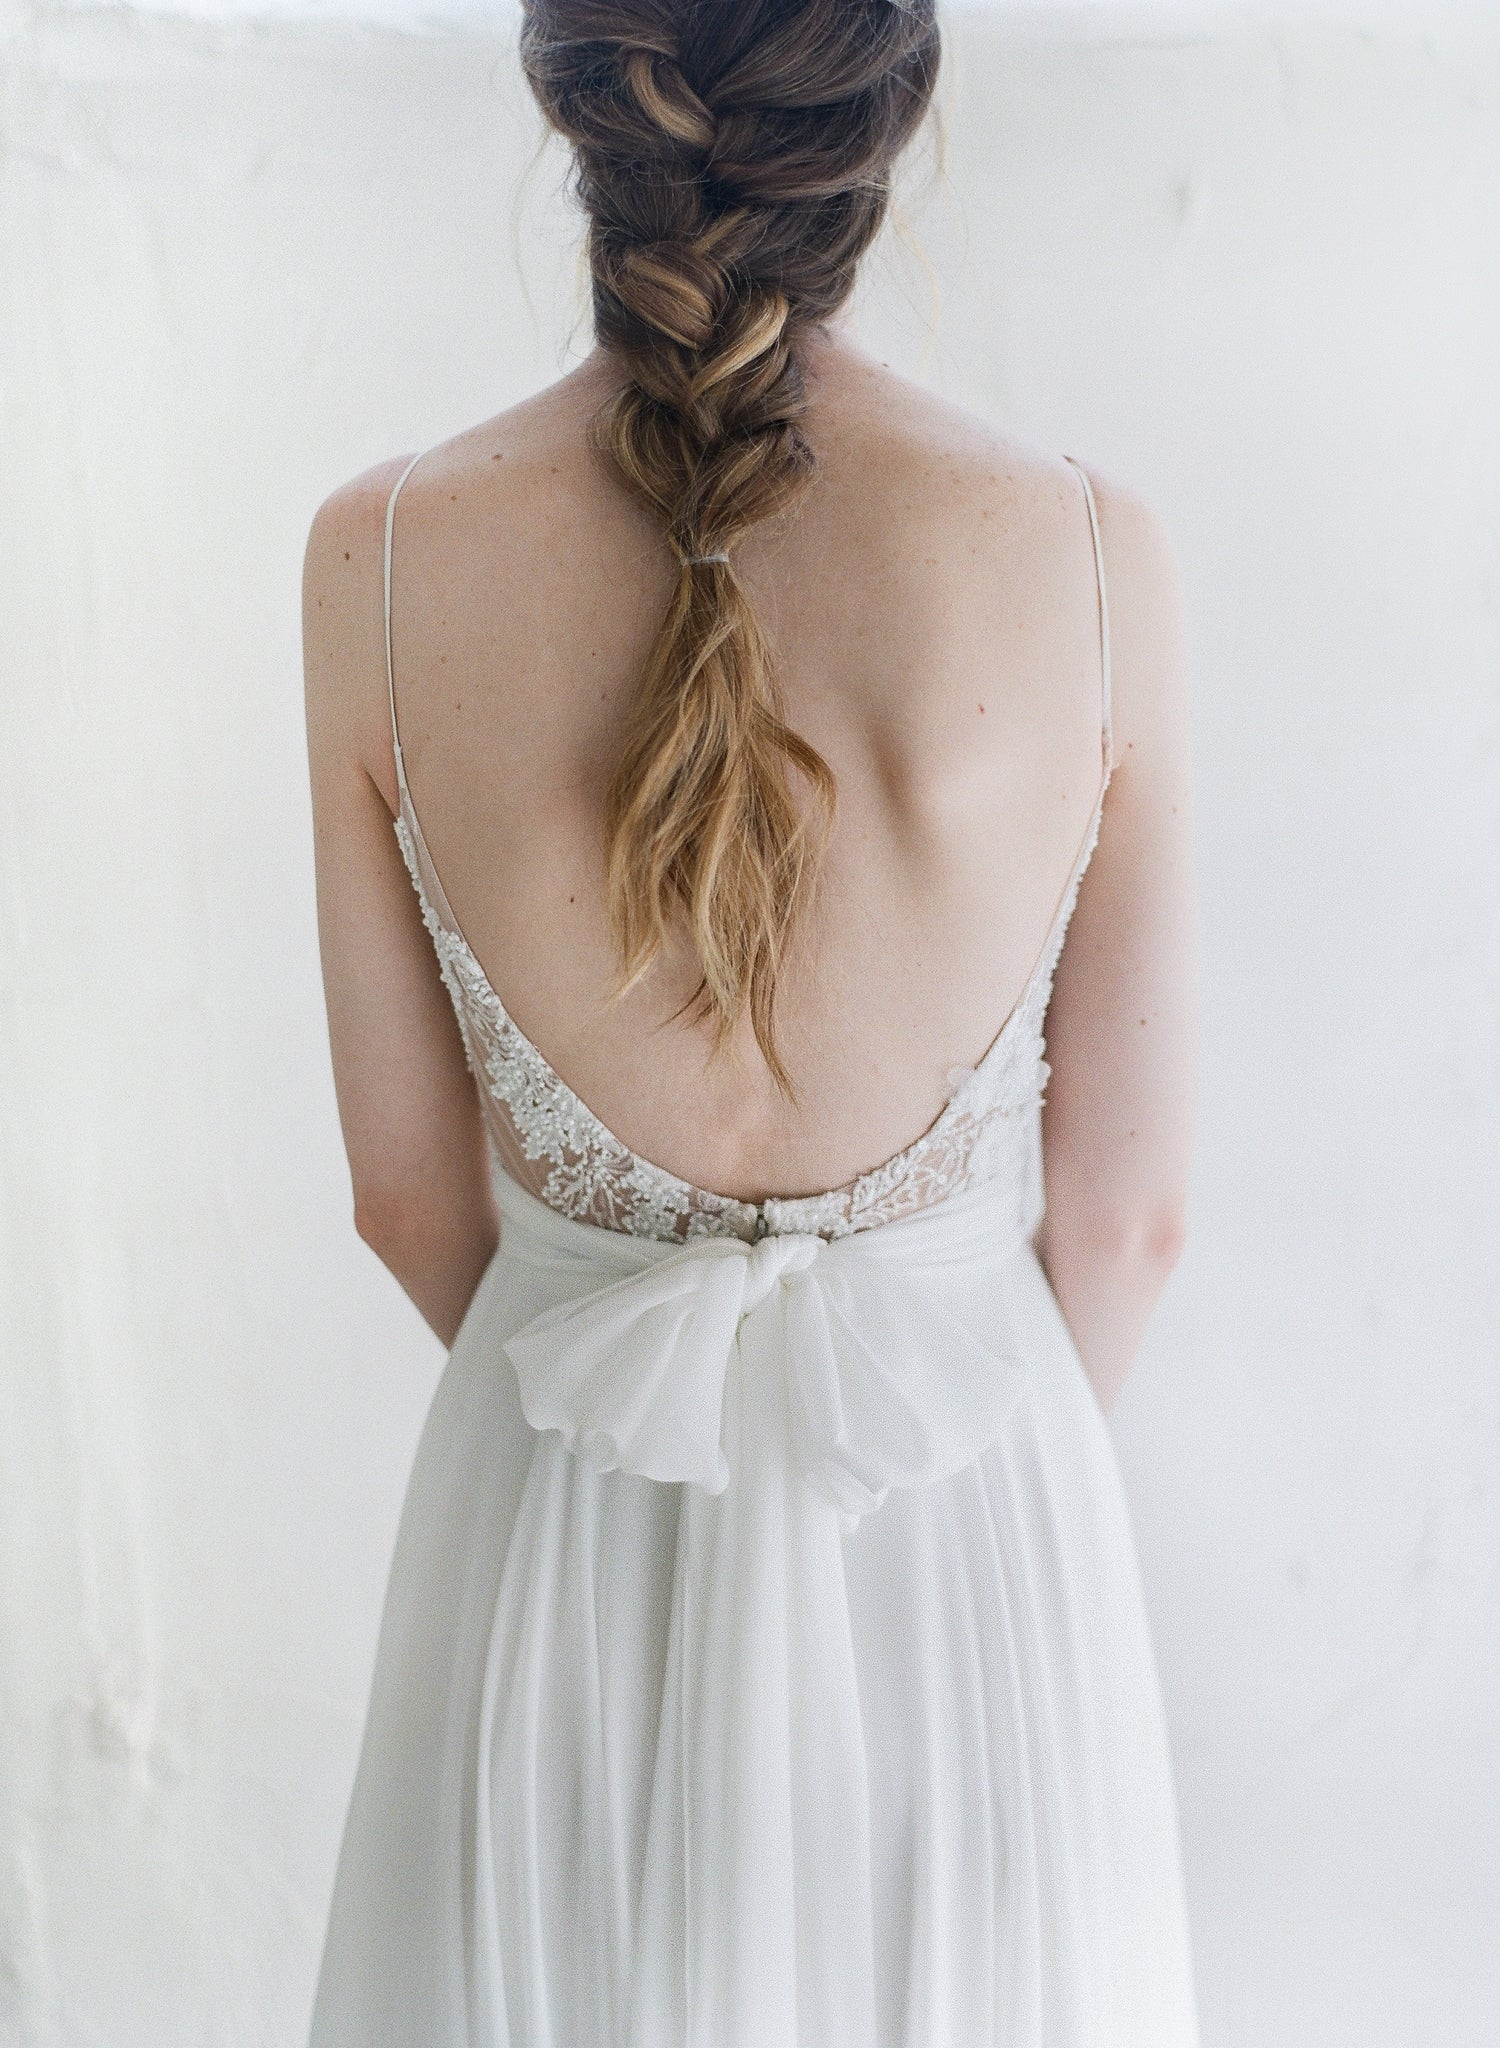 Flowy chiffon dress sash in off-white